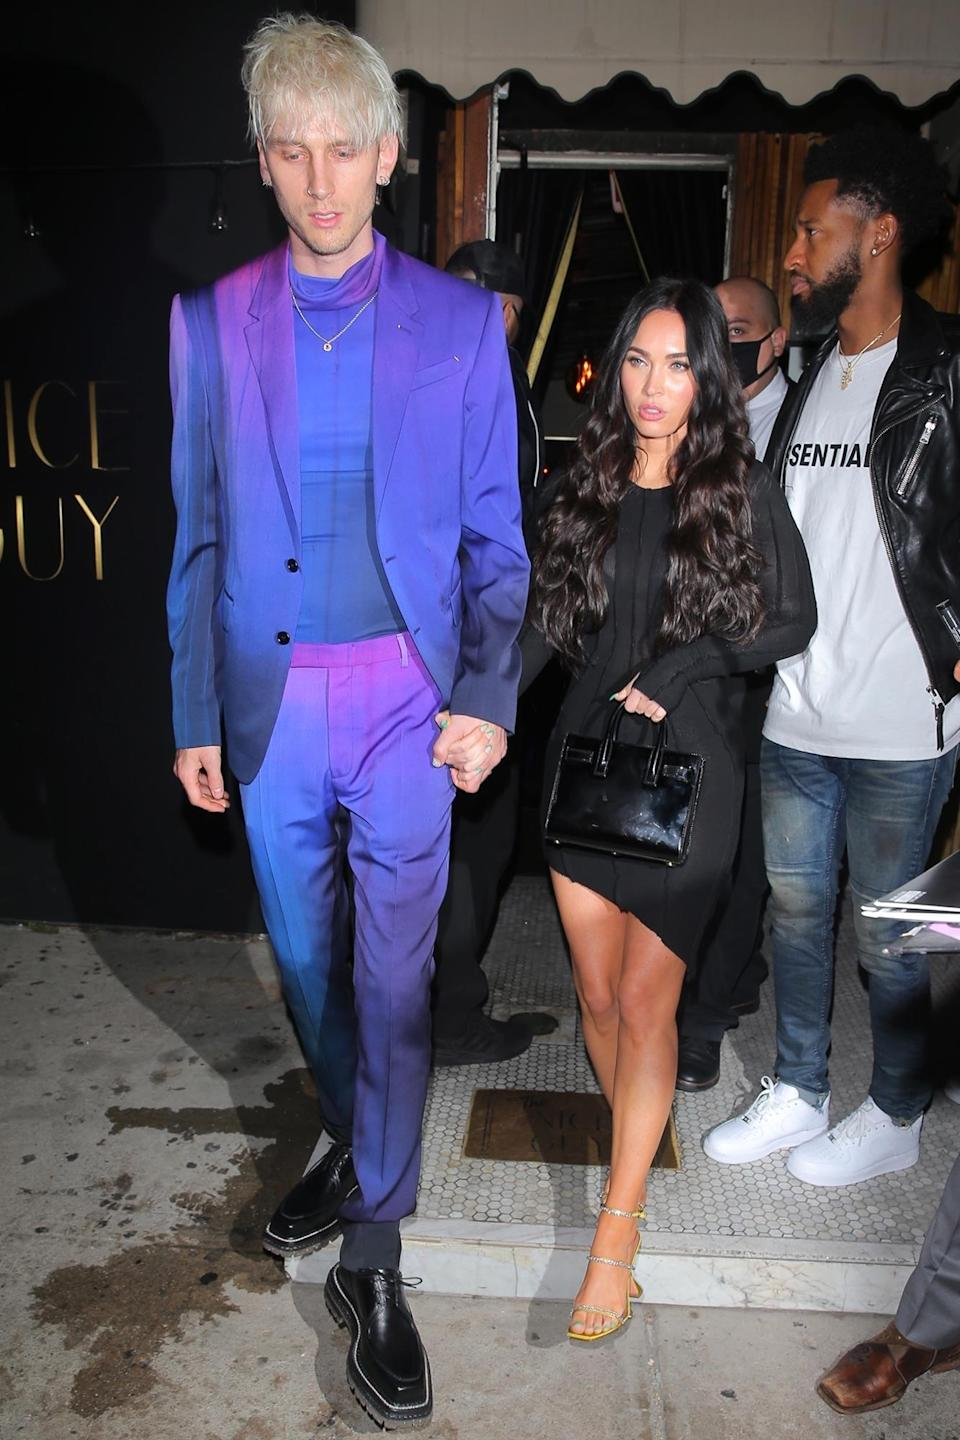 <p>Megan Fox and Machine Gun Kelly were seen holding hands and leaving The Nice Guy in West Hollywood, California.</p>